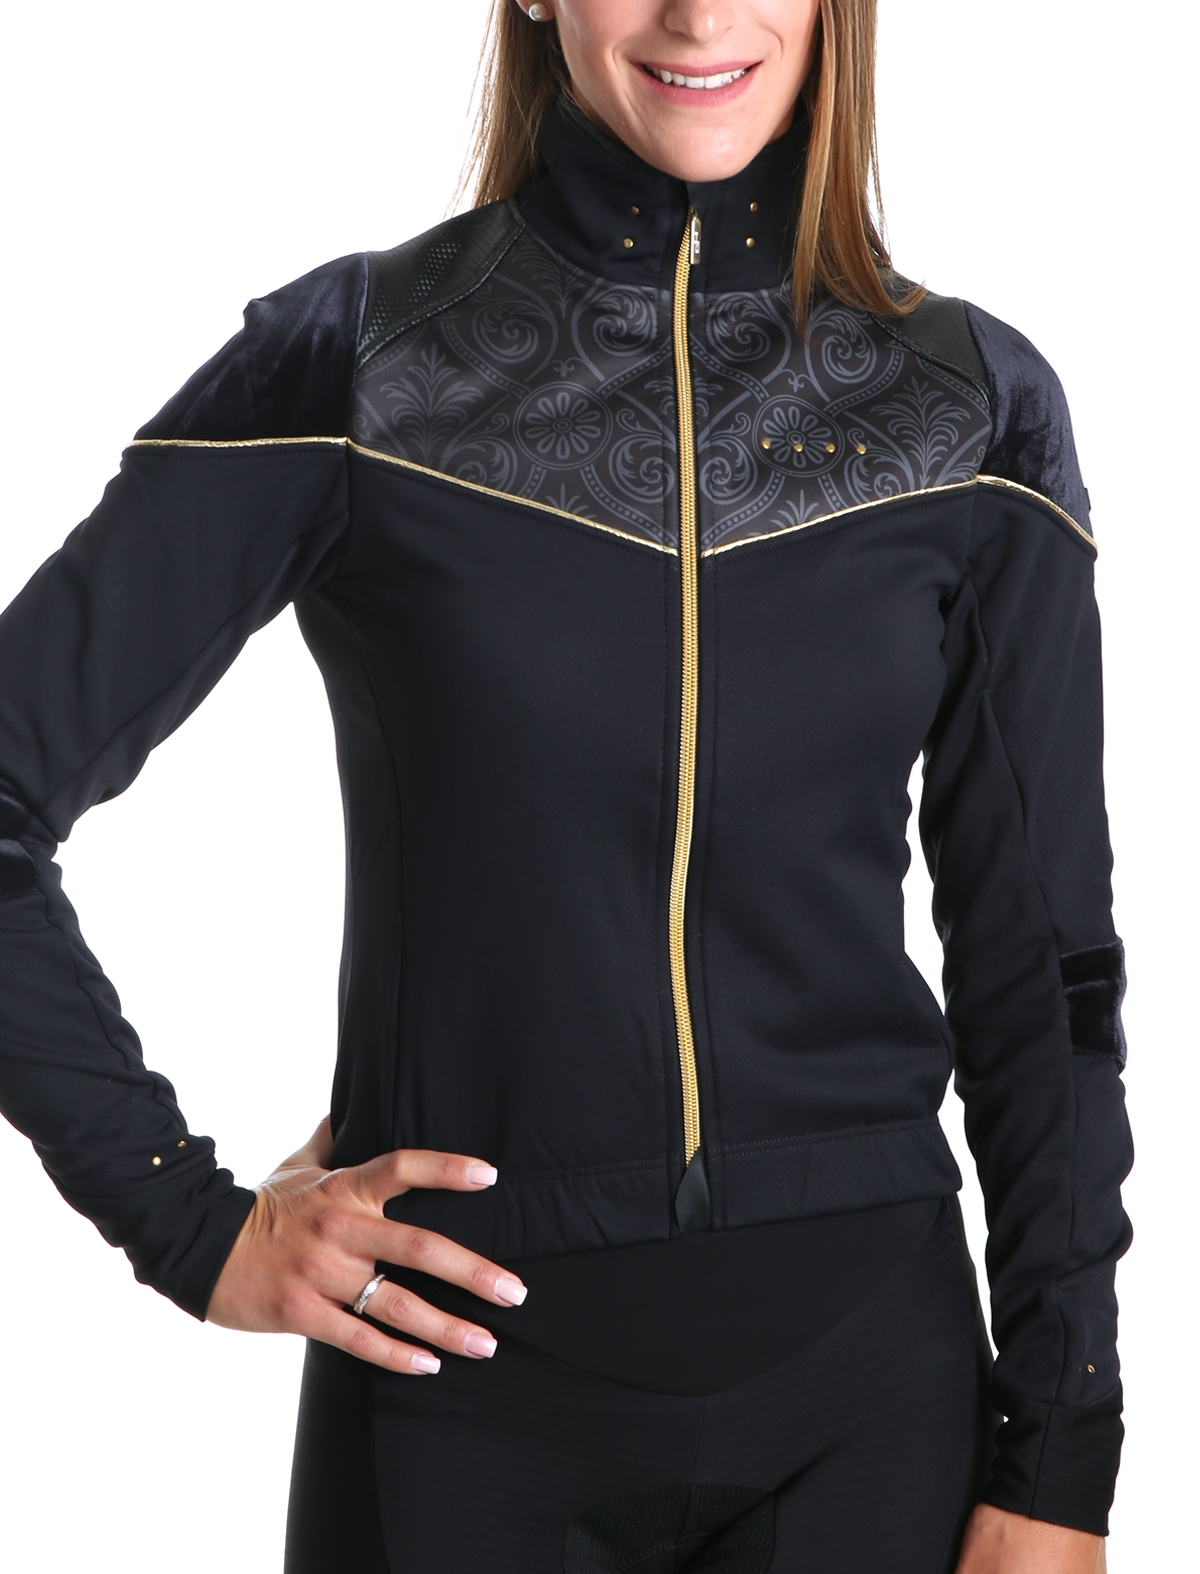 Women's winter cycling jacket Chic – G4 dimension